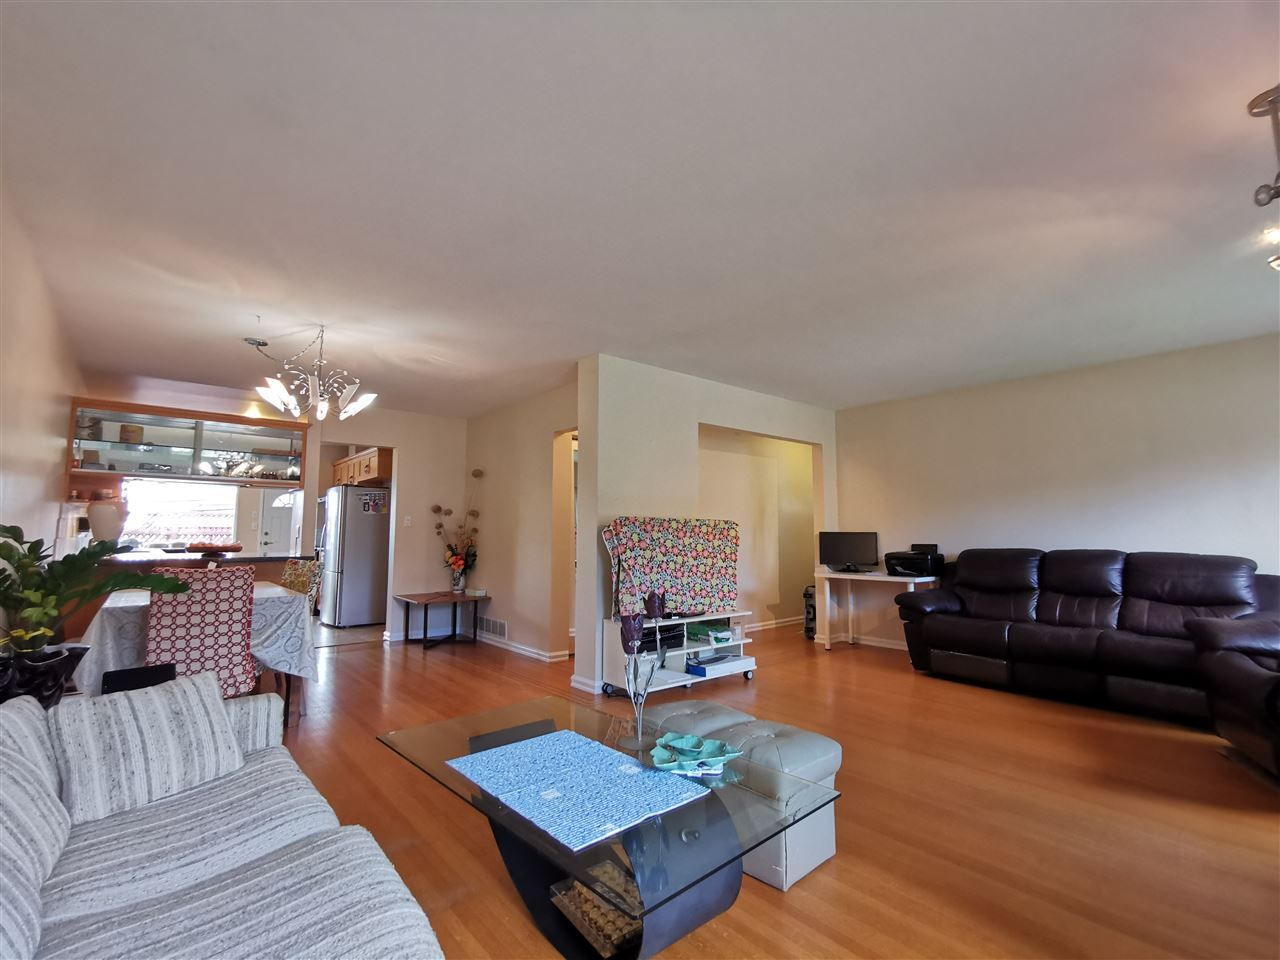 Main Photo: 7375 WEST BOULEVARD in Vancouver: S.W. Marine House for sale (Vancouver West)  : MLS®# R2560438